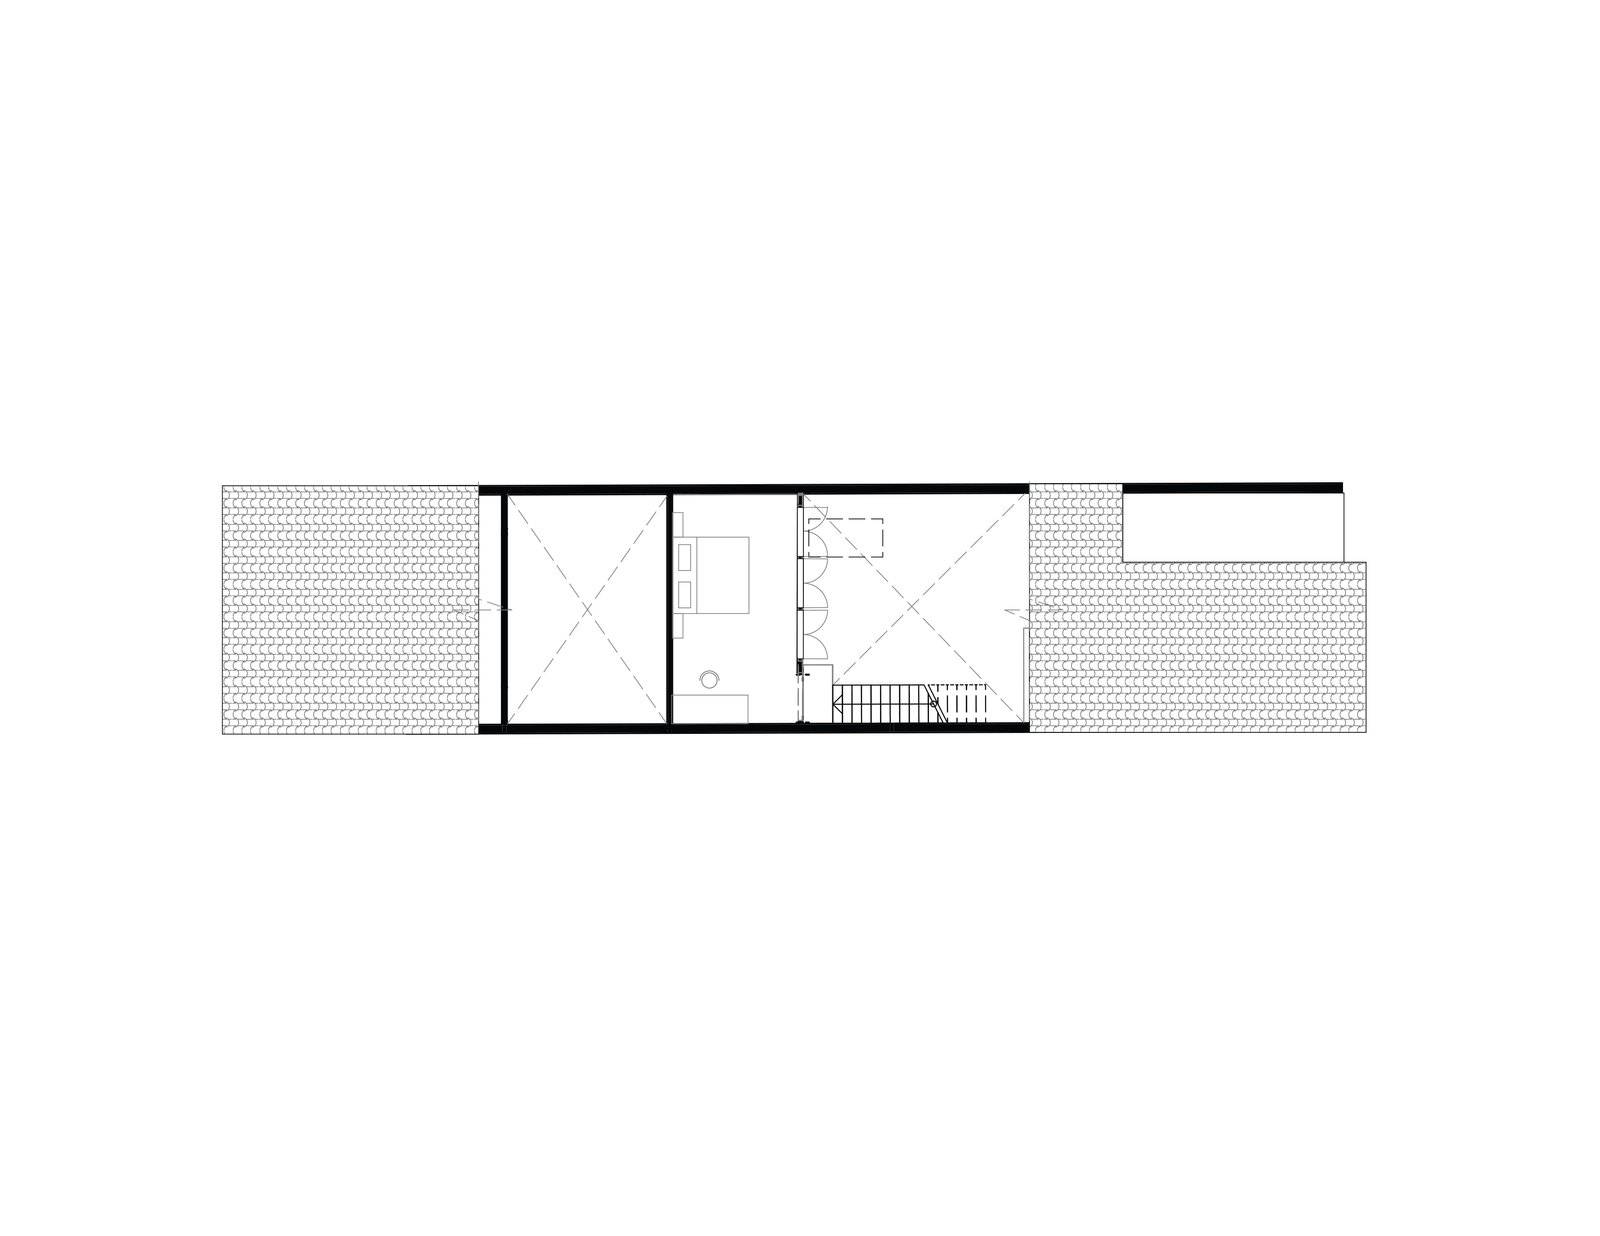 Heng House mezzanine floor plan  Photo 21 of 22 in An Imaginative Courtyard House in Singapore Makes Room for Multiple Generations